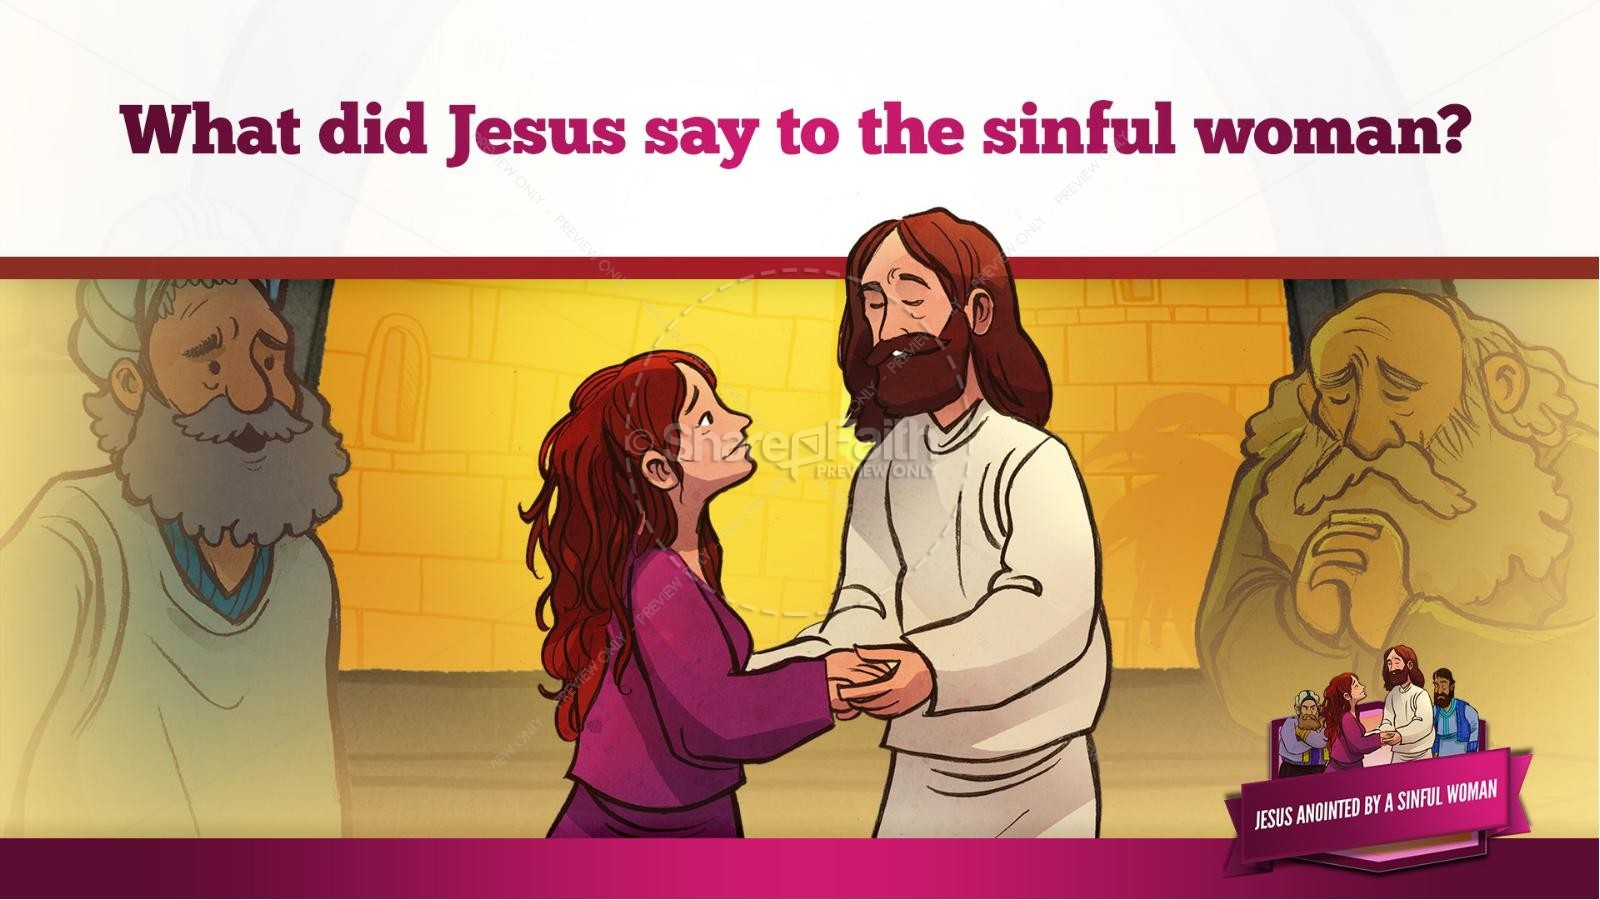 Sinful woman forgiven by jesus christ - 2 8